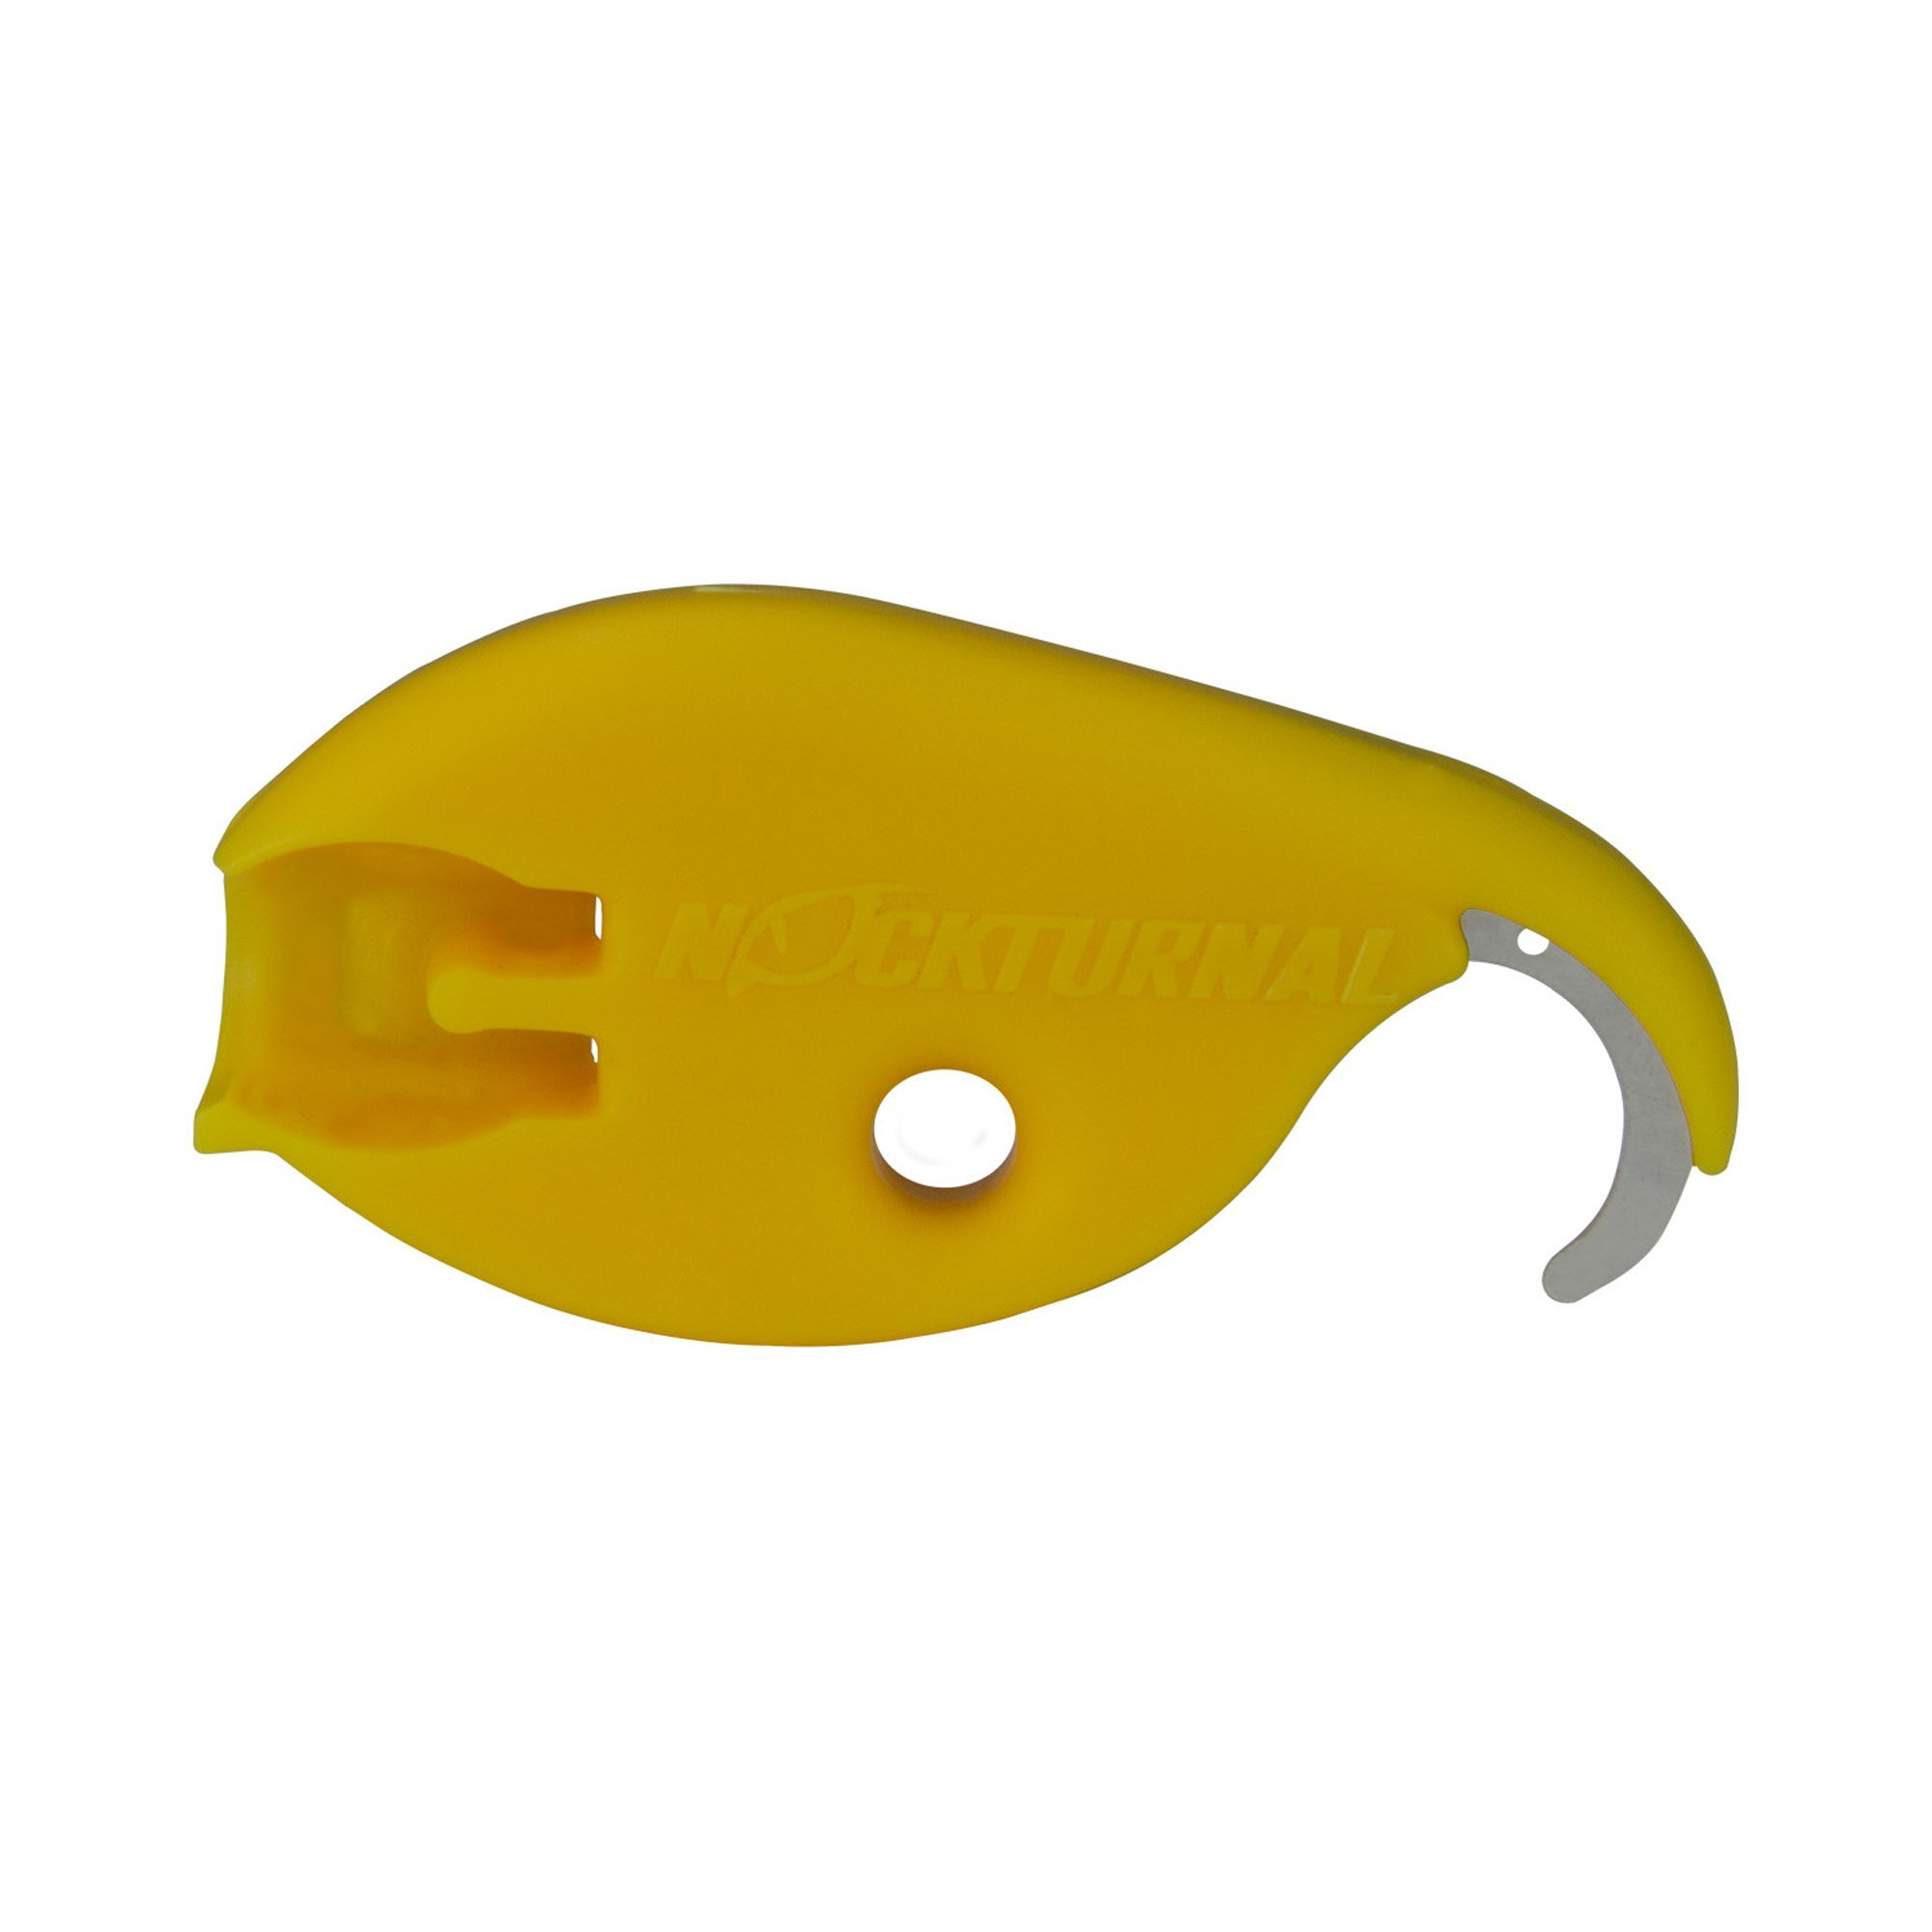 Nockturnal Archery Lighted Nocks Installation Removal Tool, Yellow